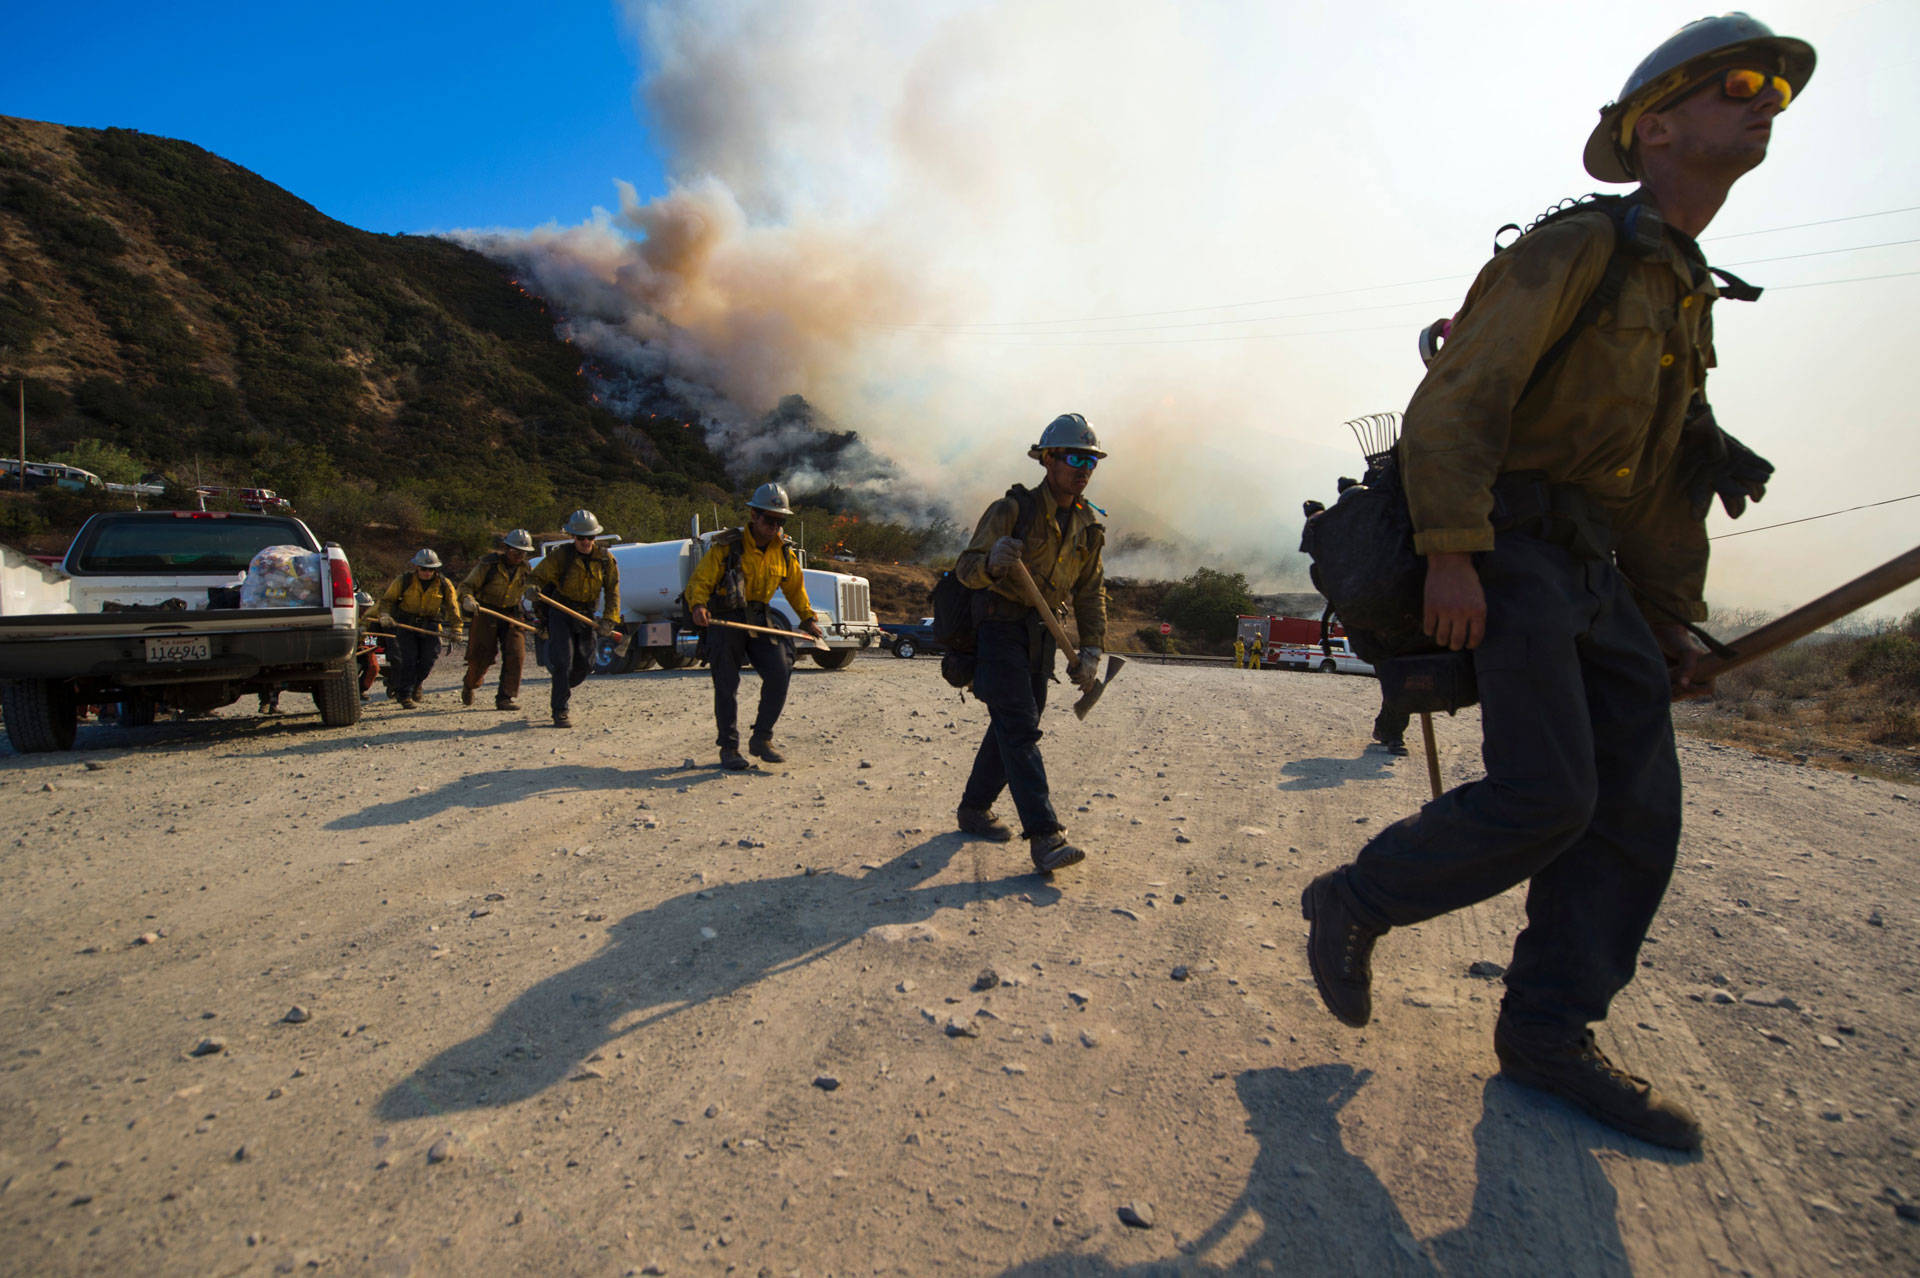 Firefighters prepare to clear a hot spot at the Blue Cut Fire near Wrightwood on Aug. 17, 2016. The blaze destroyed nearly 100 homes and forced the evacuation of 80,000 people in San Bernardino County. Robyn Beck/AFP/Getty Images